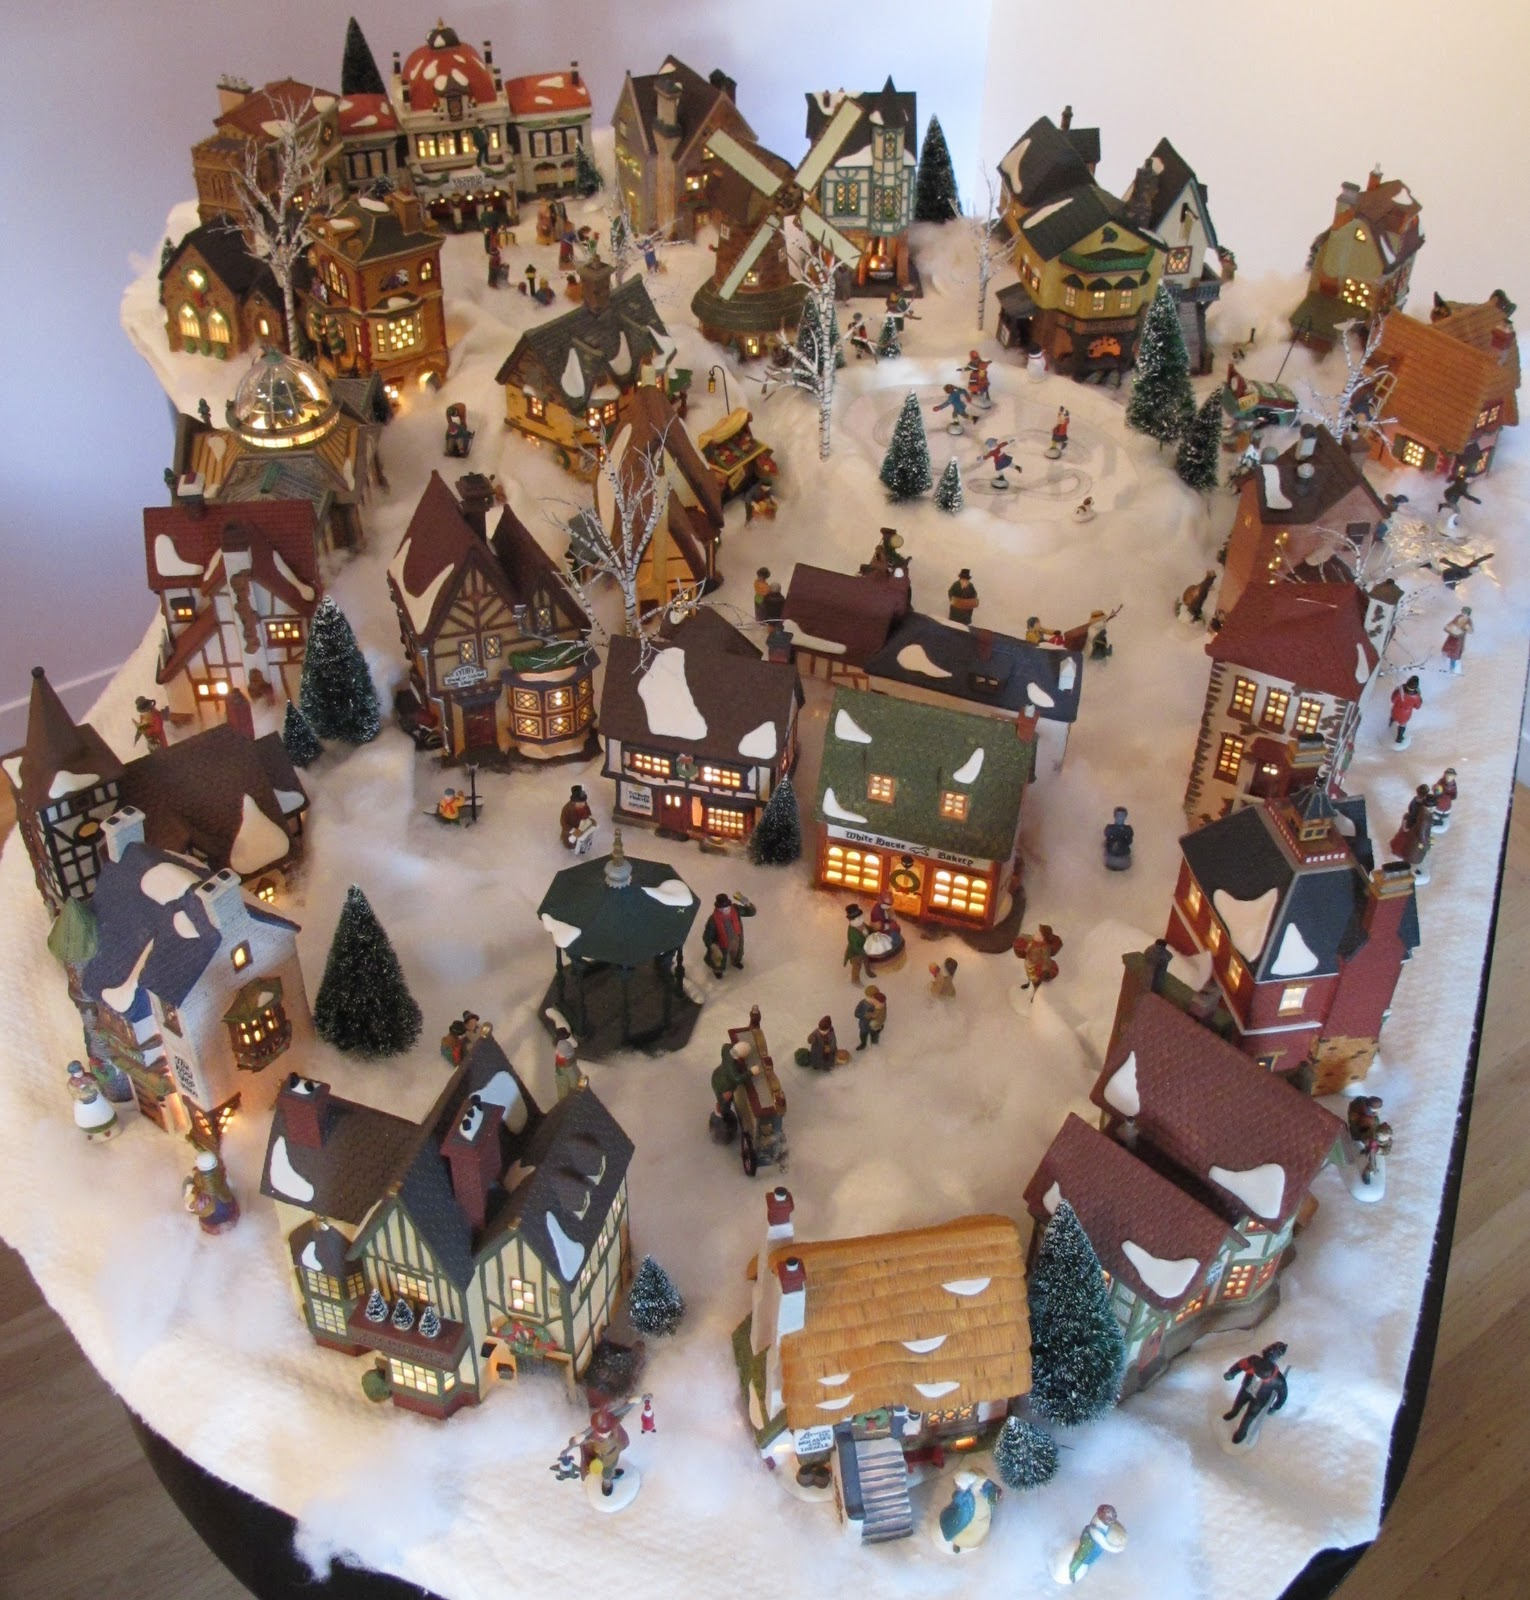 Department 56 dickens village display ideas -  Village That Grew Organically Without Building Codes Or A Planning Commission So My Streets Are Not Laid Out In A Grid Instead Most Of The Activity